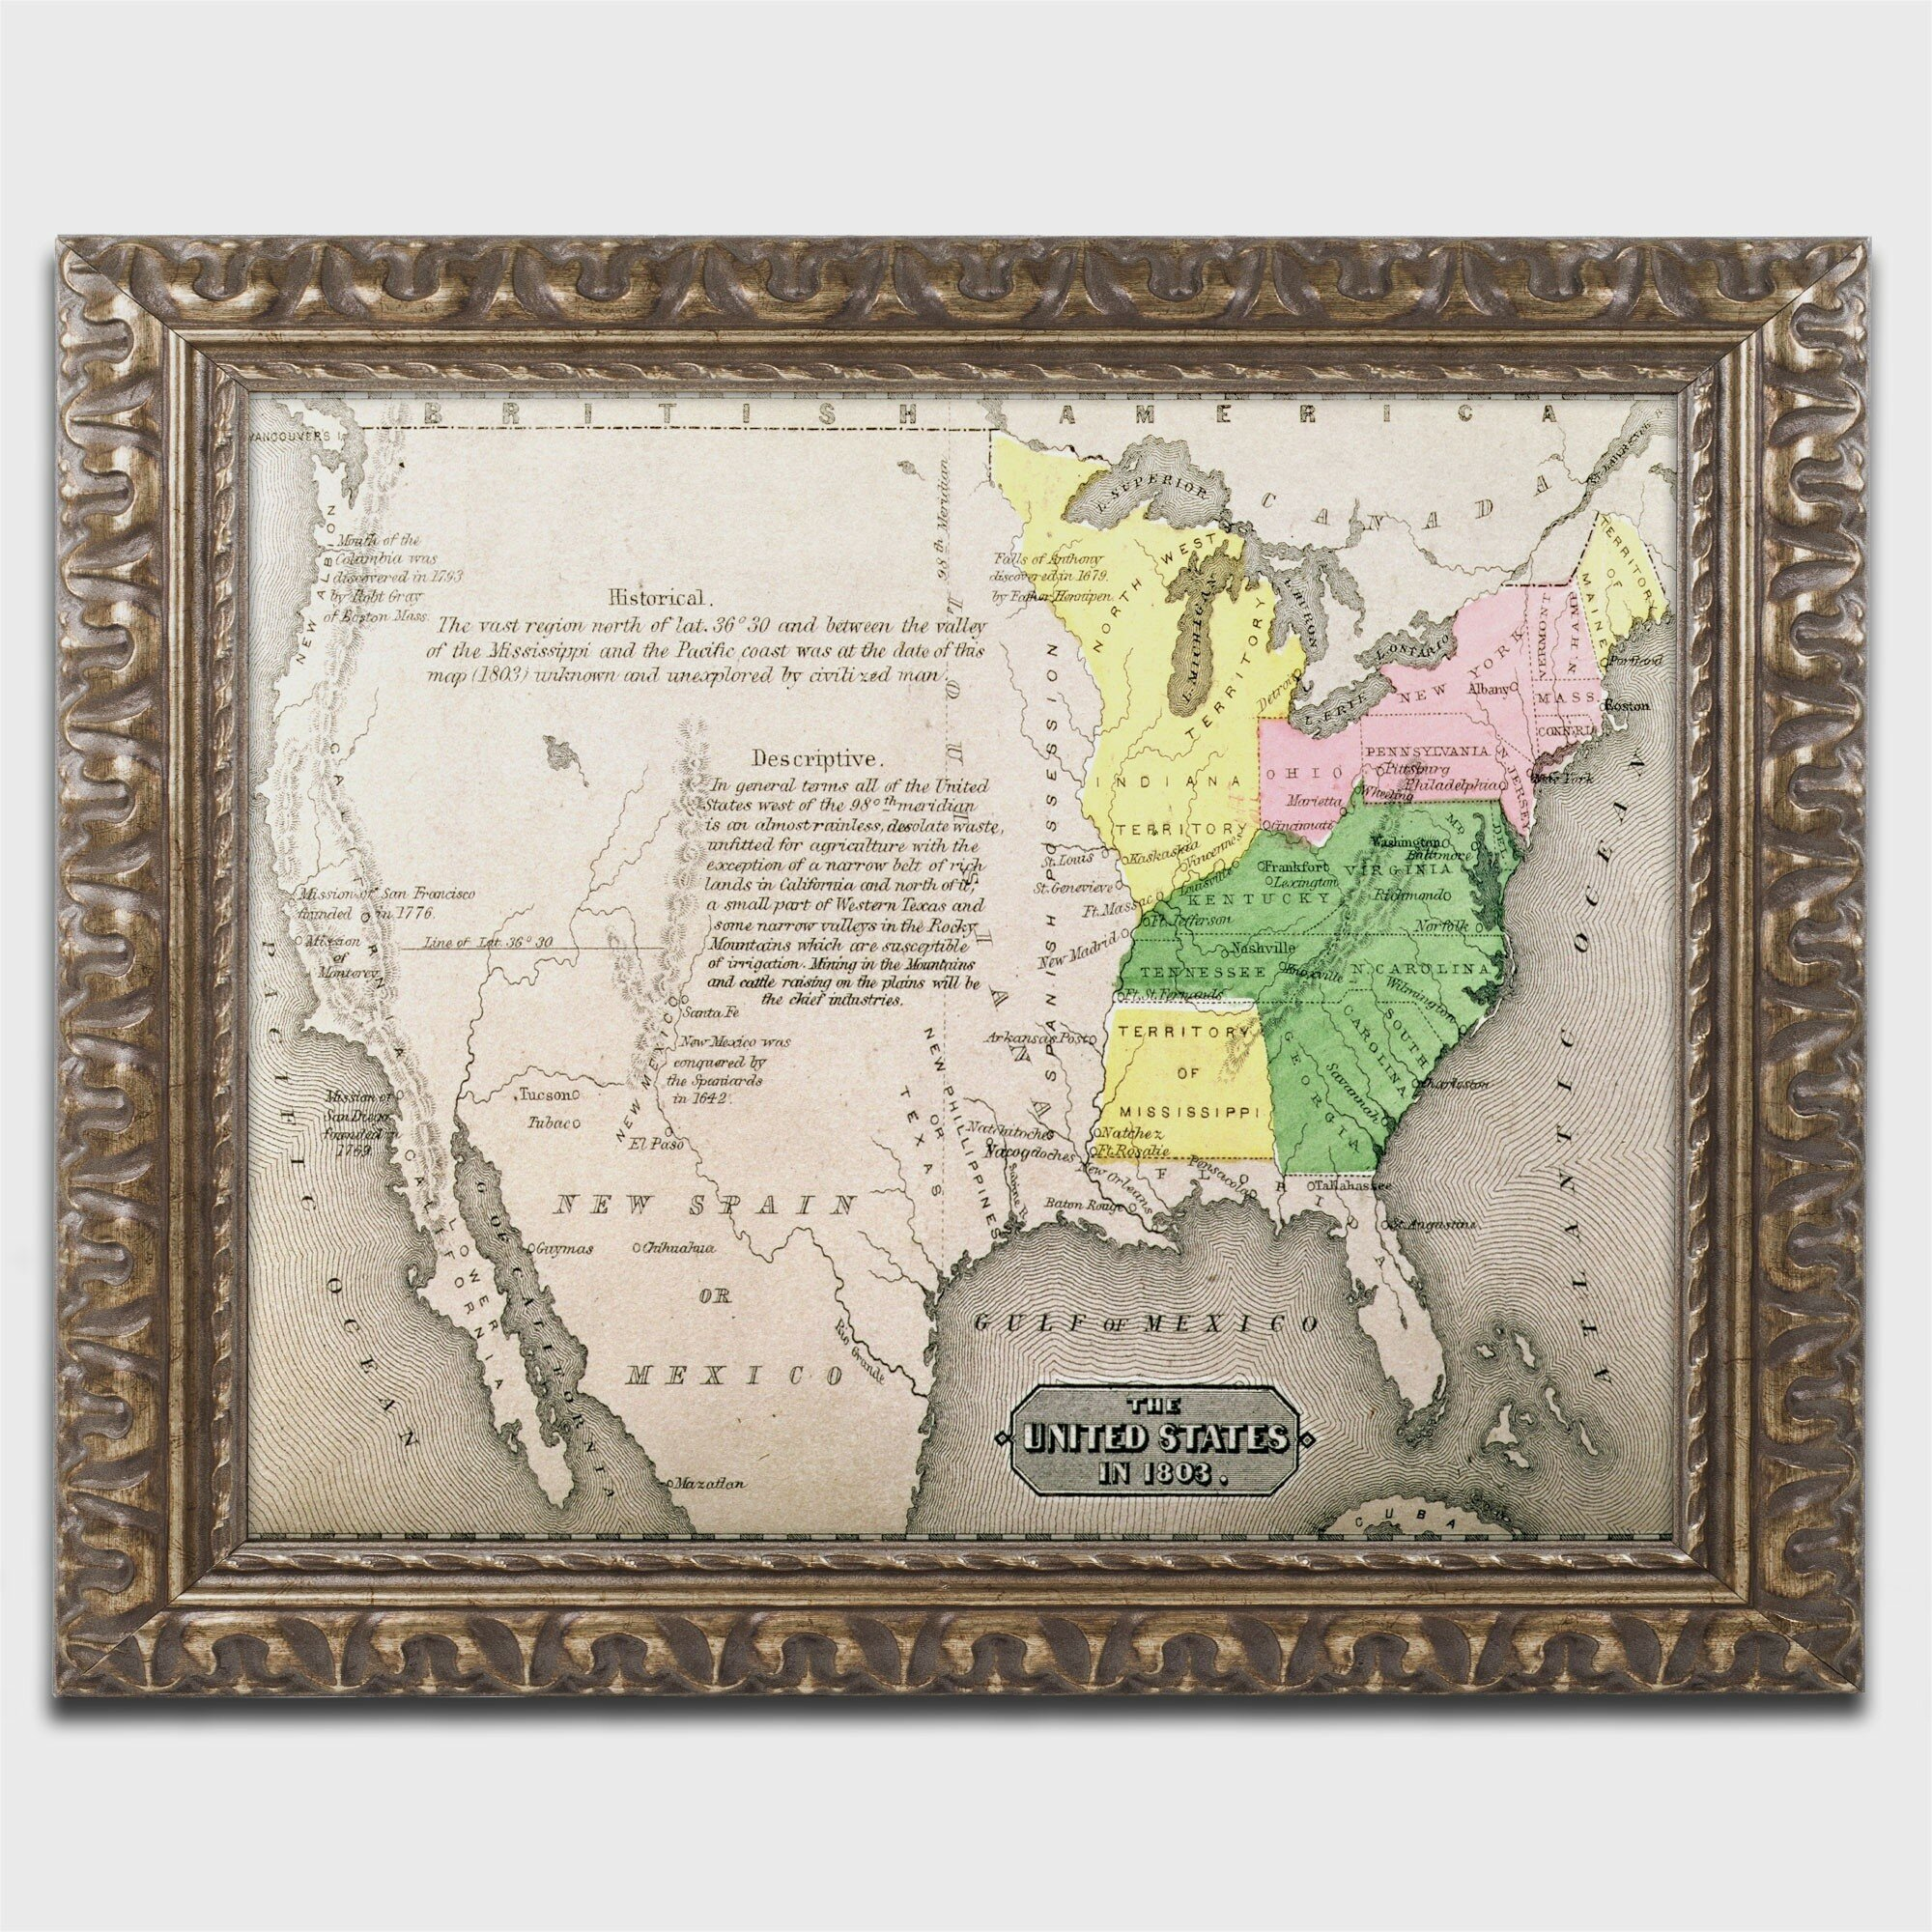 Trademark Art Map Of The United States In Framed Graphic Art - Small framed world map